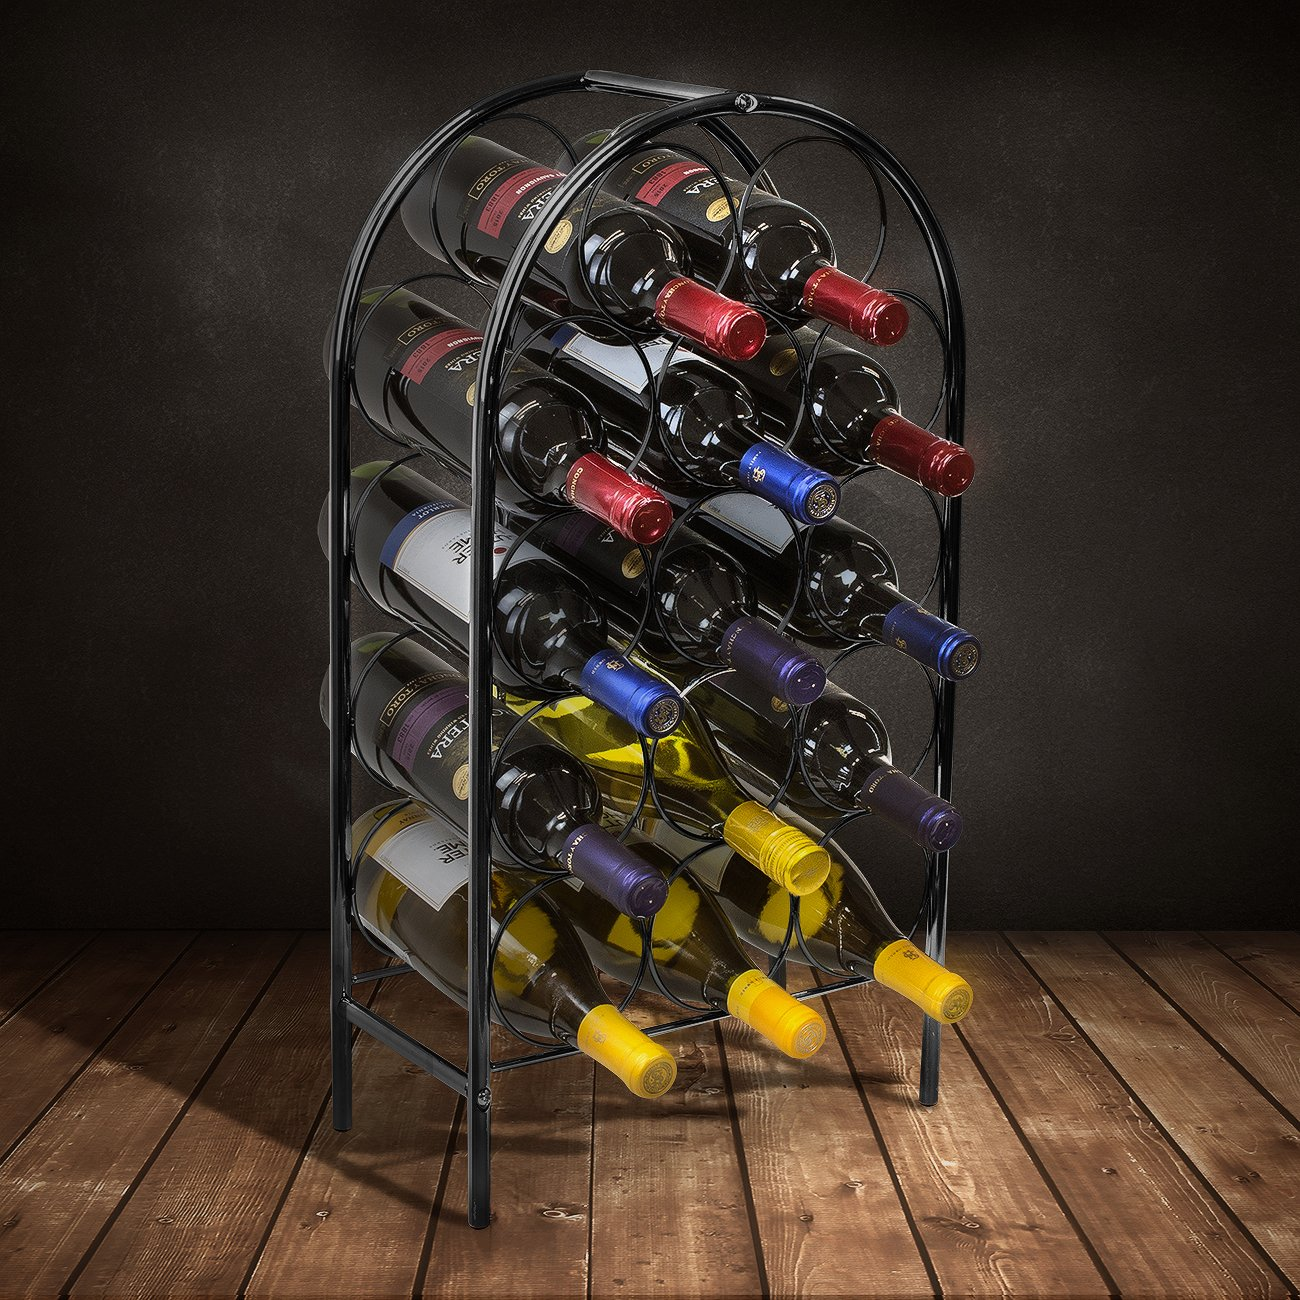 Sorbus Wine Rack Stand Bordeaux Chateau Style - Holds 14 Bottles of Your Favorite Wine - Elegant Storage for Kitchen, Dining Room, Bar, or Wine Cellar (14 Bottle - Black) by Sorbus (Image #2)